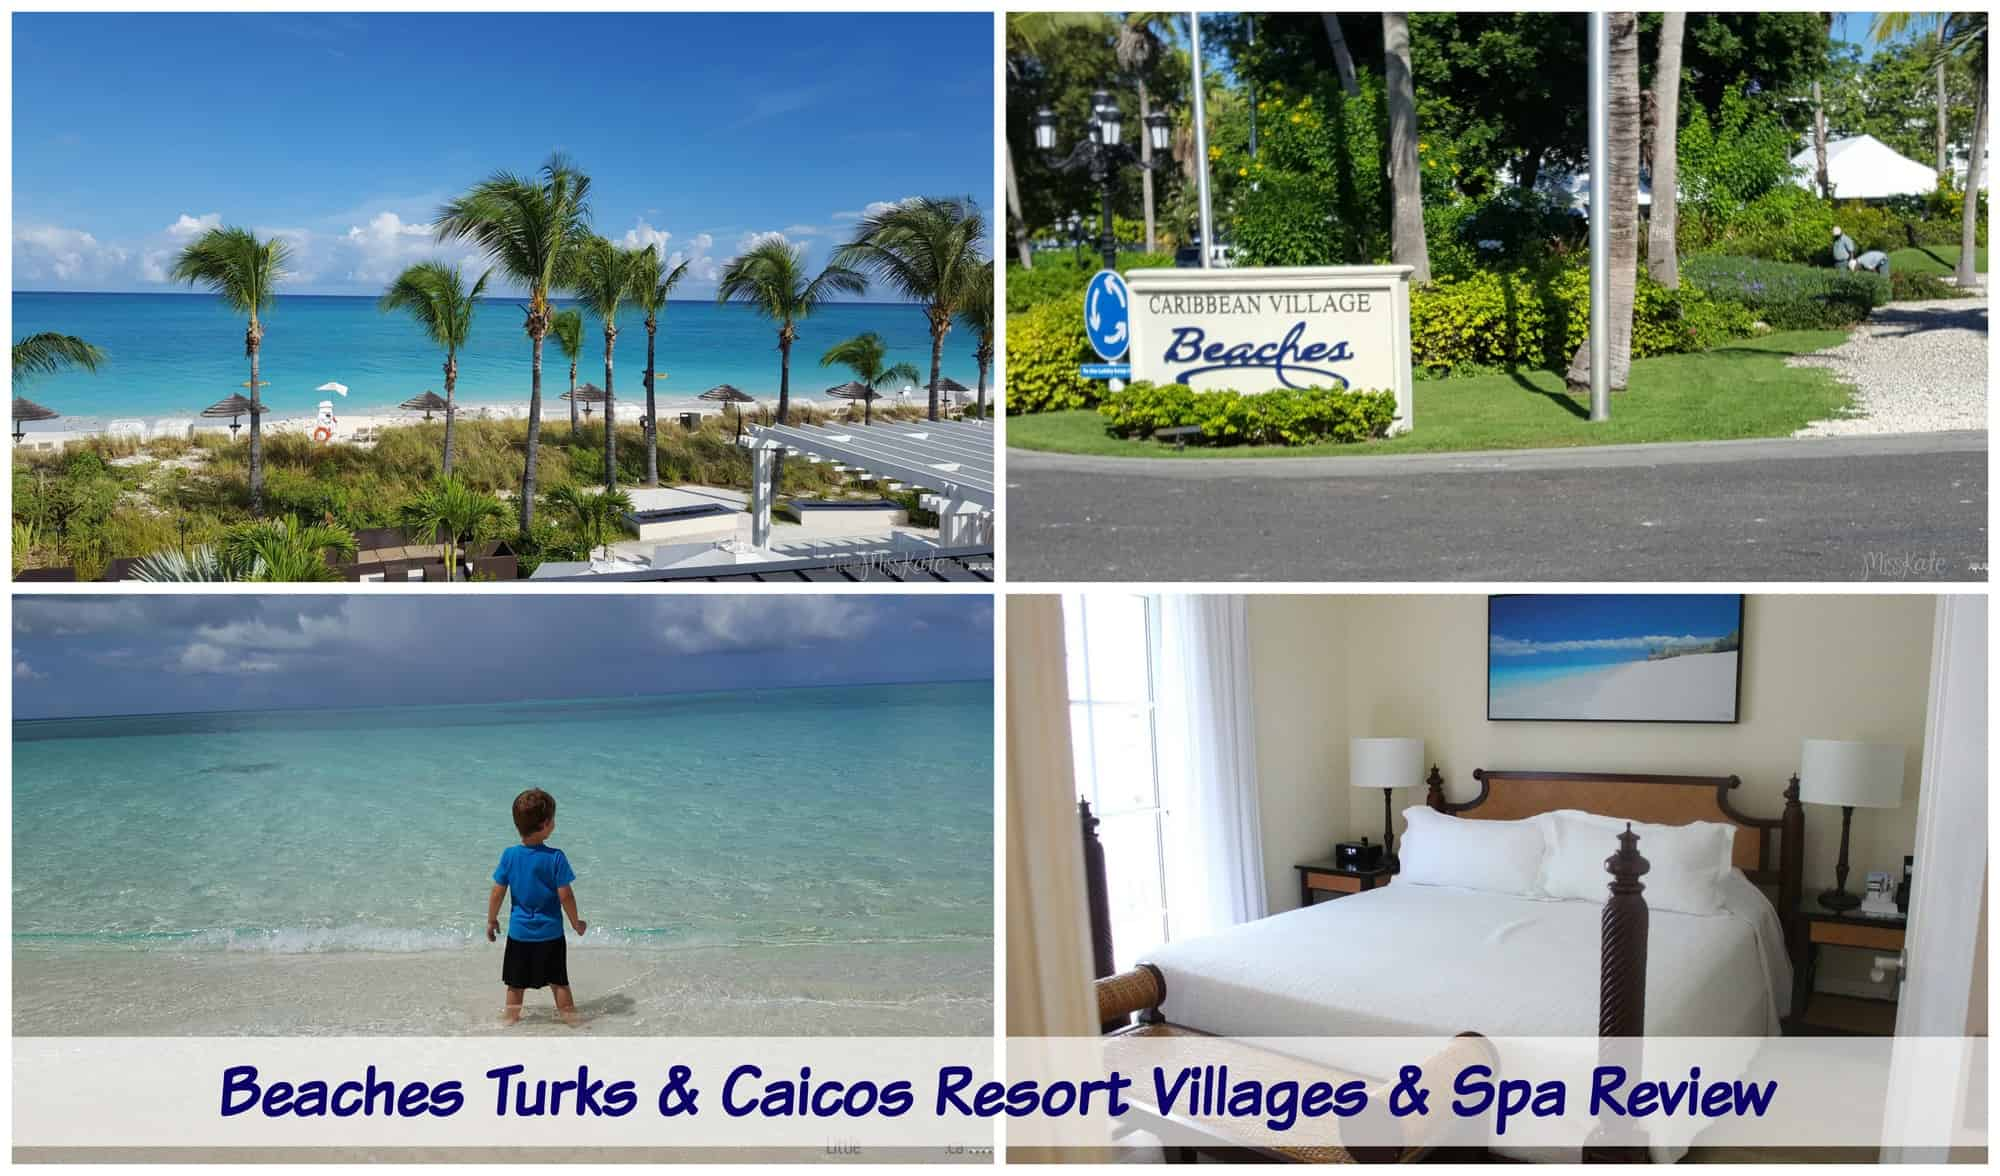 Beaches Resort Villages Turks and Caicos review